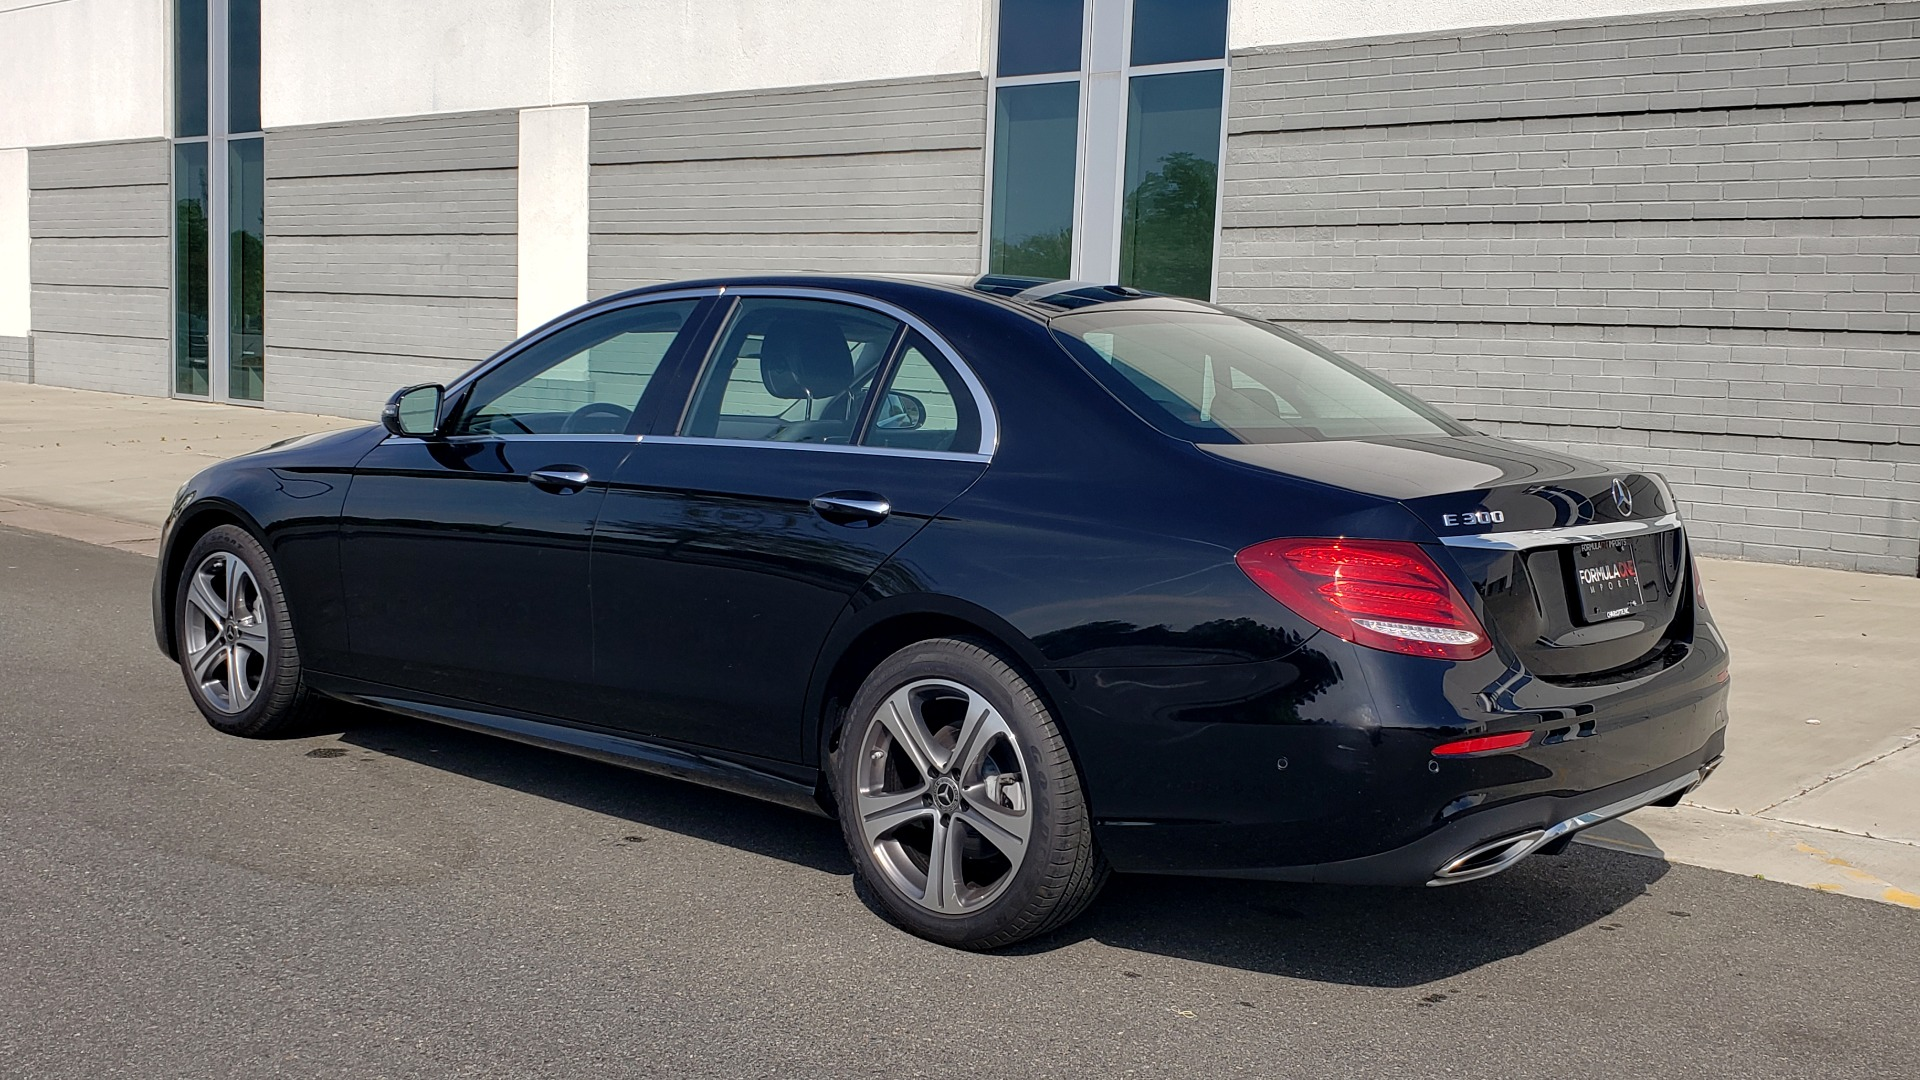 Used 2018 Mercedes-Benz E-CLASS E 300 PREMIUM / 4MATIC / NAV / SUNROOF / H/K SND / REARVIEW for sale $34,195 at Formula Imports in Charlotte NC 28227 5